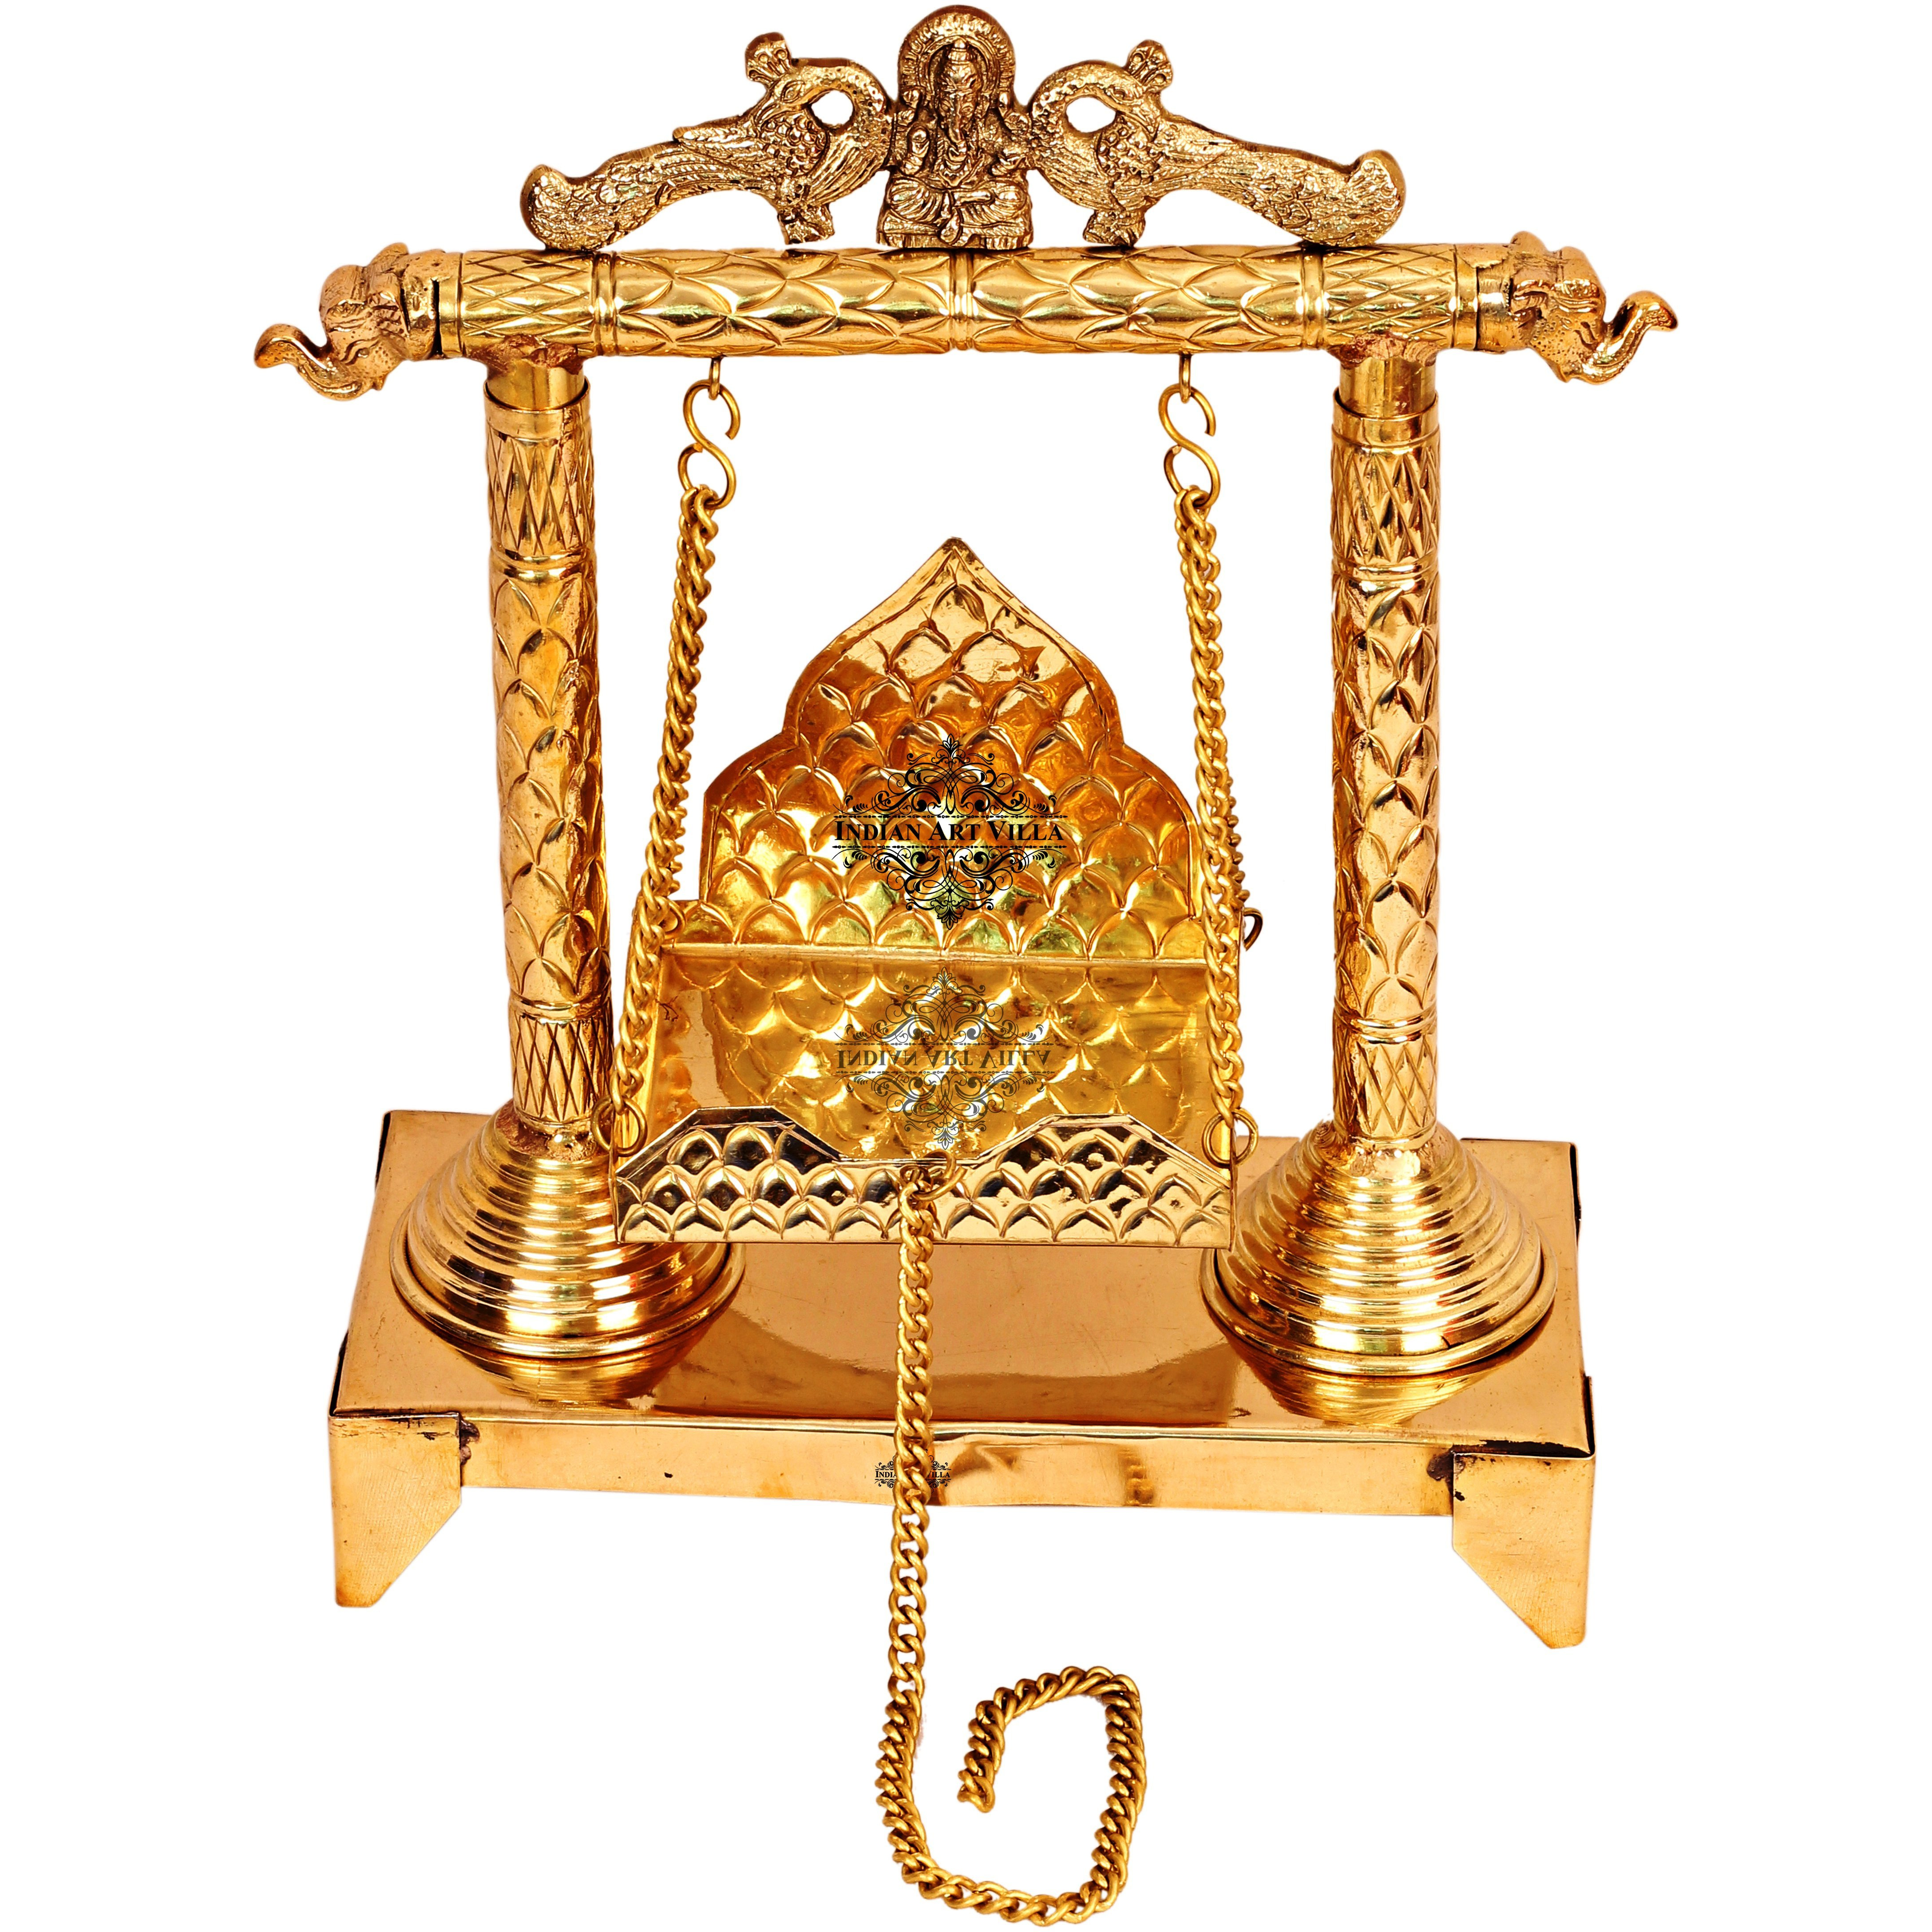 IndianArtVilla Ganesh Ji Design Brass Jhula Swing for Ladu Gopal Ji Lord Ganesha